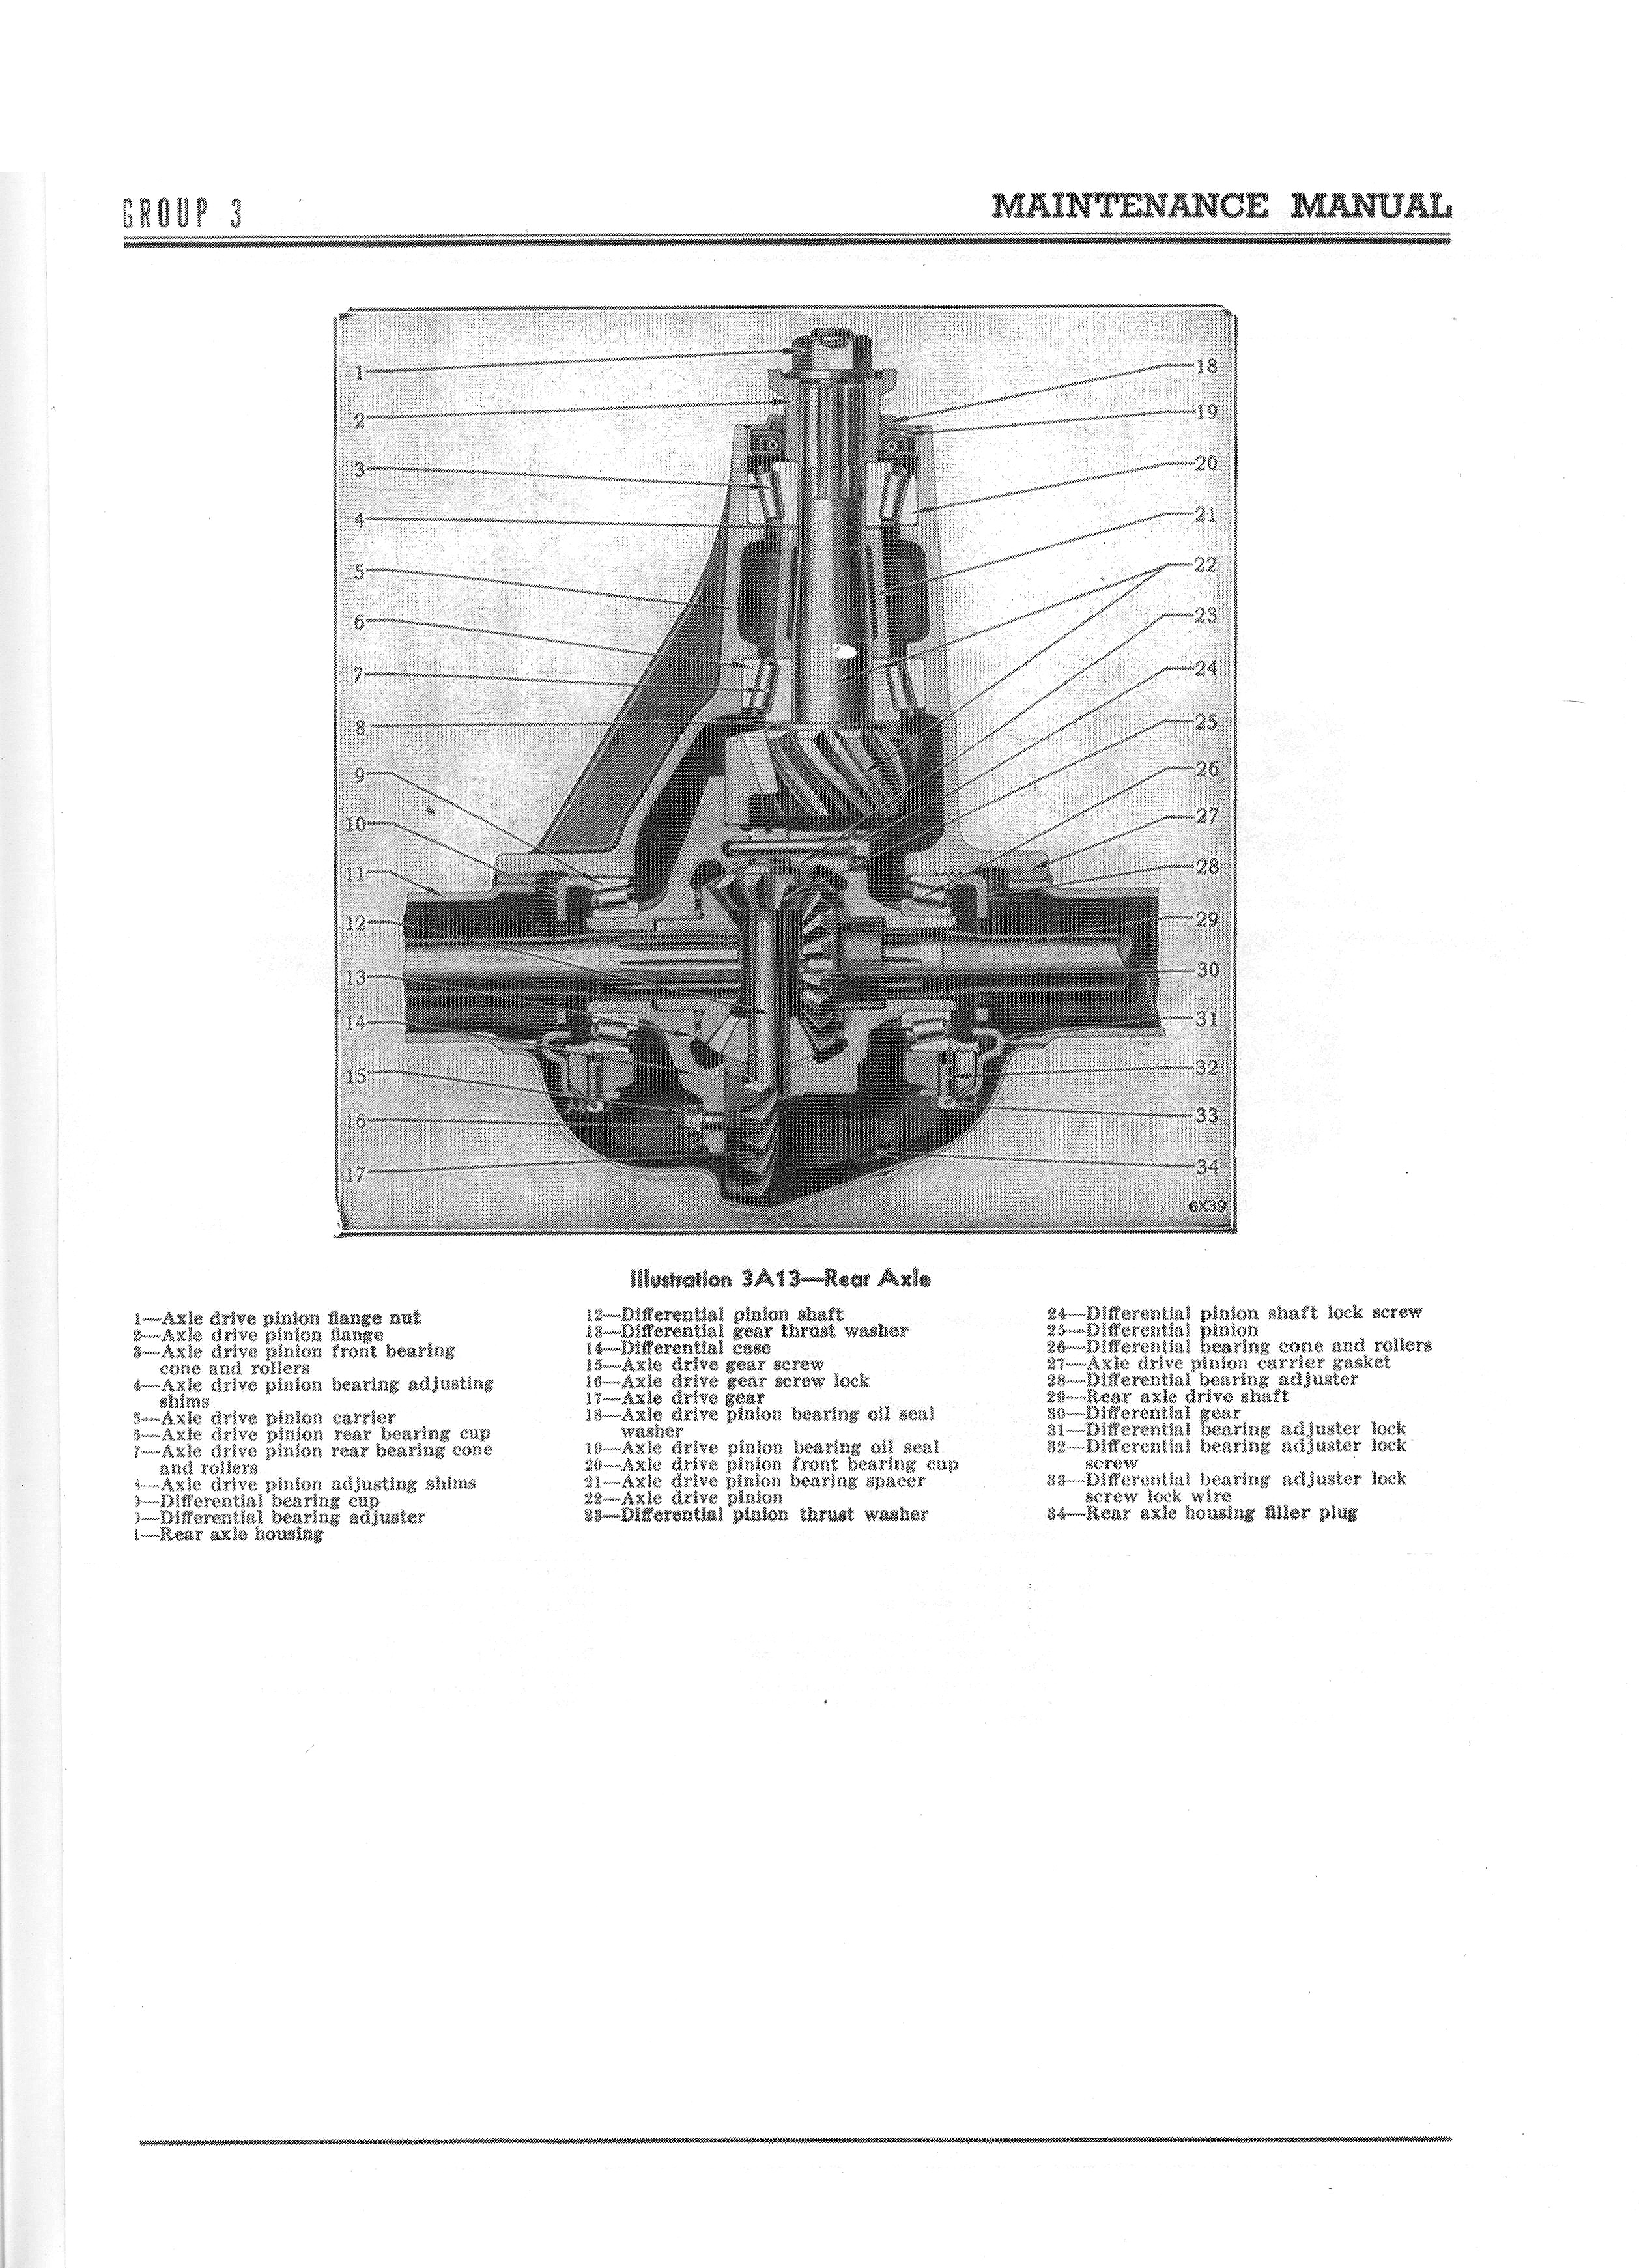 1934 Chrysler Imperial Service Manual